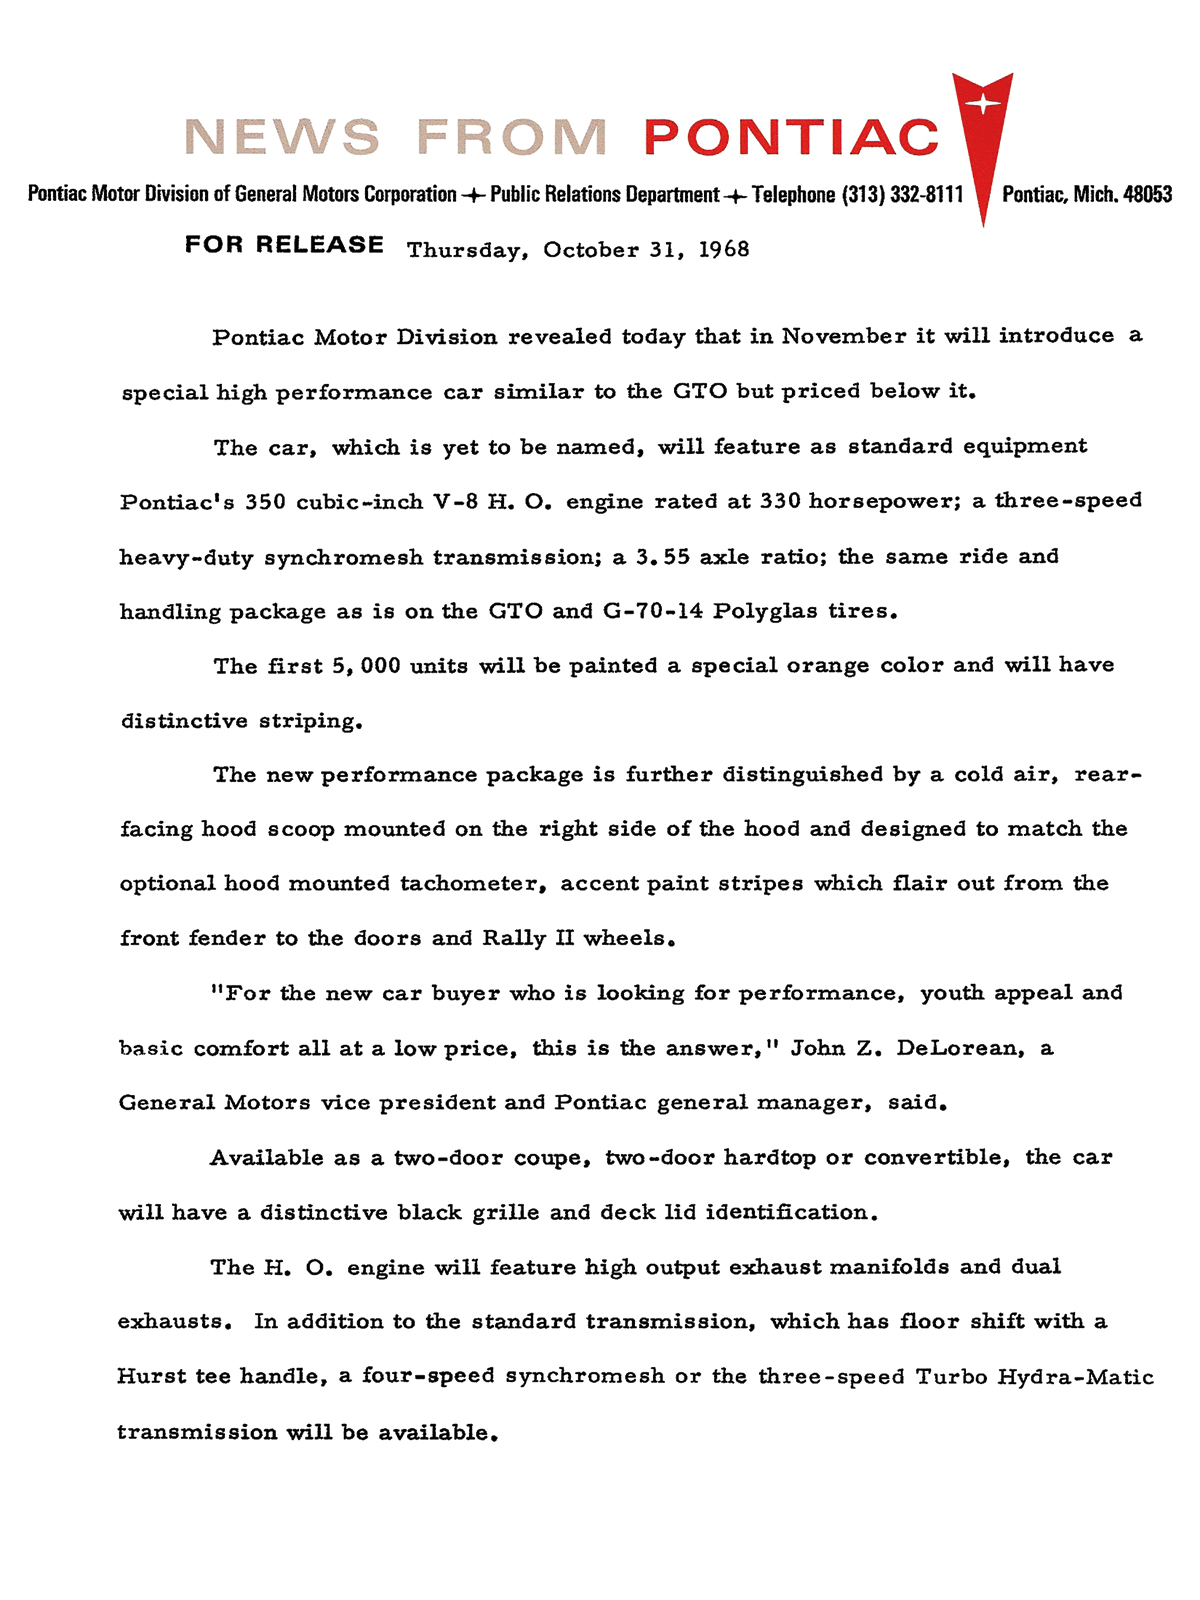 While John Delorean's Ad-Hoc committee was hard at work developing a new GTO package, Pontiac Public Relations issued this October 31, 1968, press release announcing a new low-cost performance package that included a 350 H.O. engine. Notice that at the time of printing, the concept had yet been named, which confirms that the name